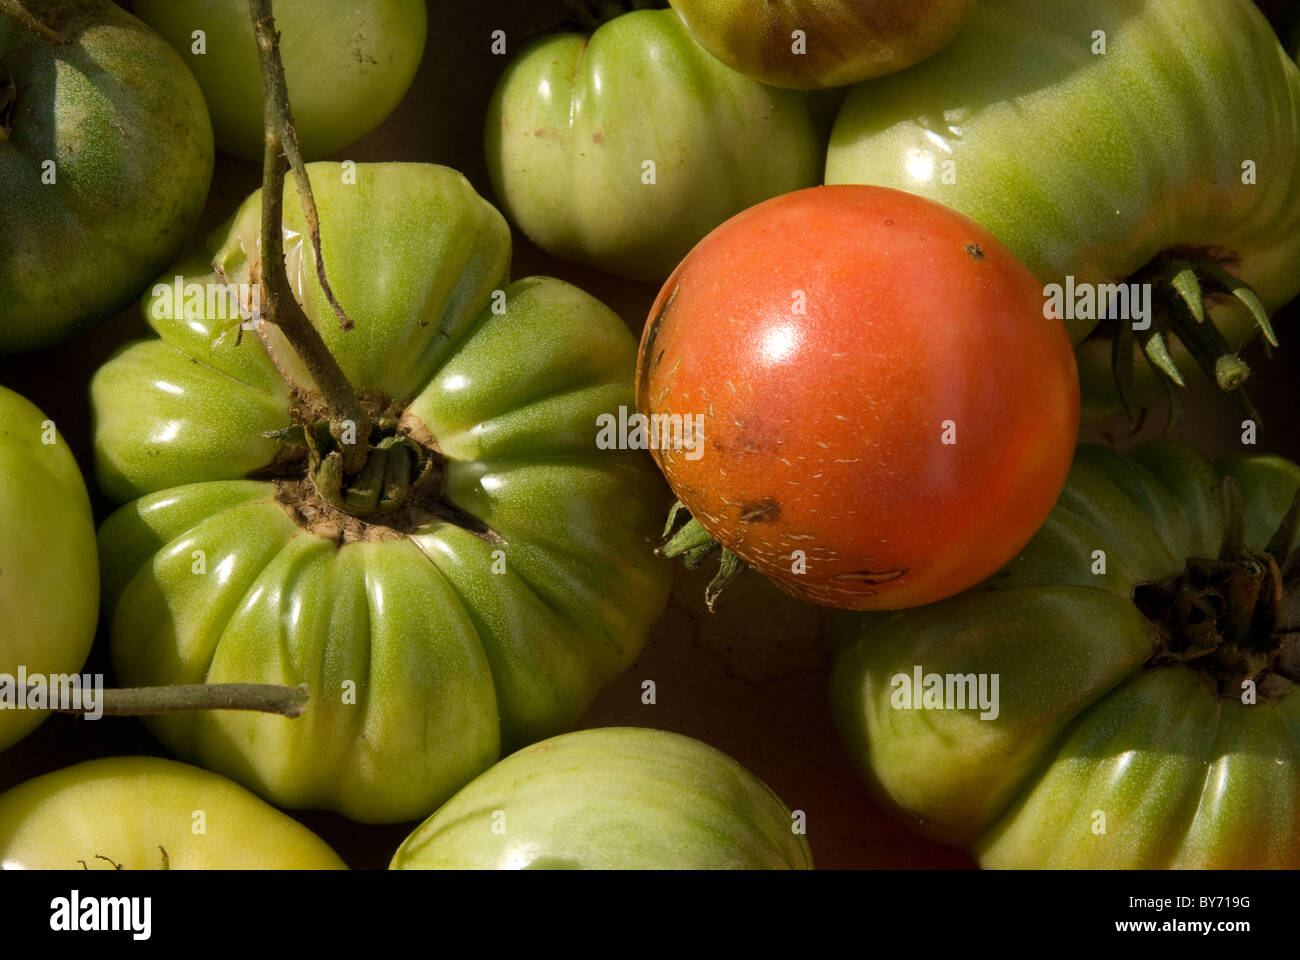 Unripened tomatoes picked early to allow them to ripen indoors - one ripe tomato is seen against the unripe tomatoes. - Stock Image